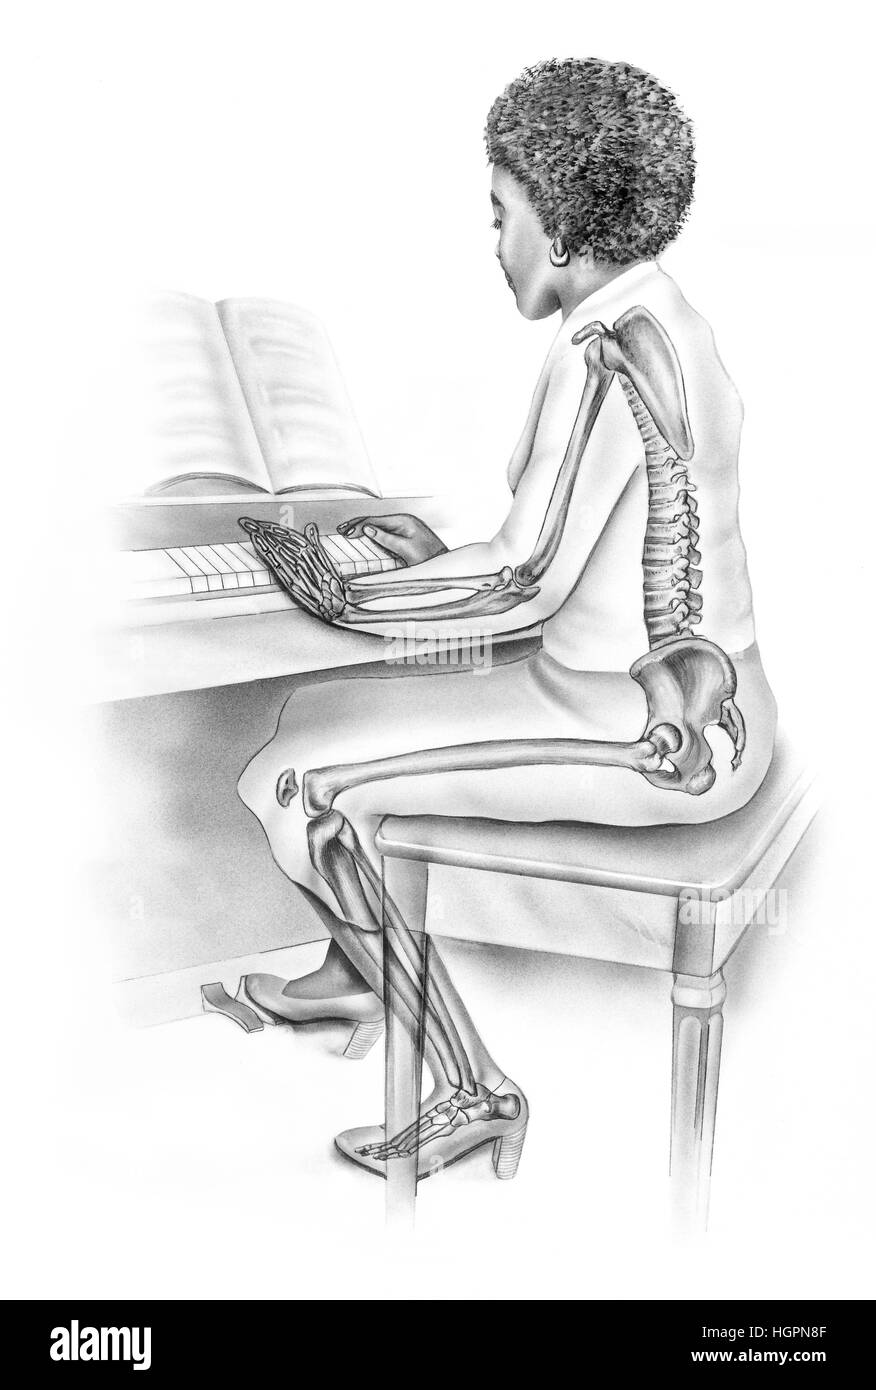 Womens Anatomy In Everyday Life Skeletal Structure Of Woman Stock